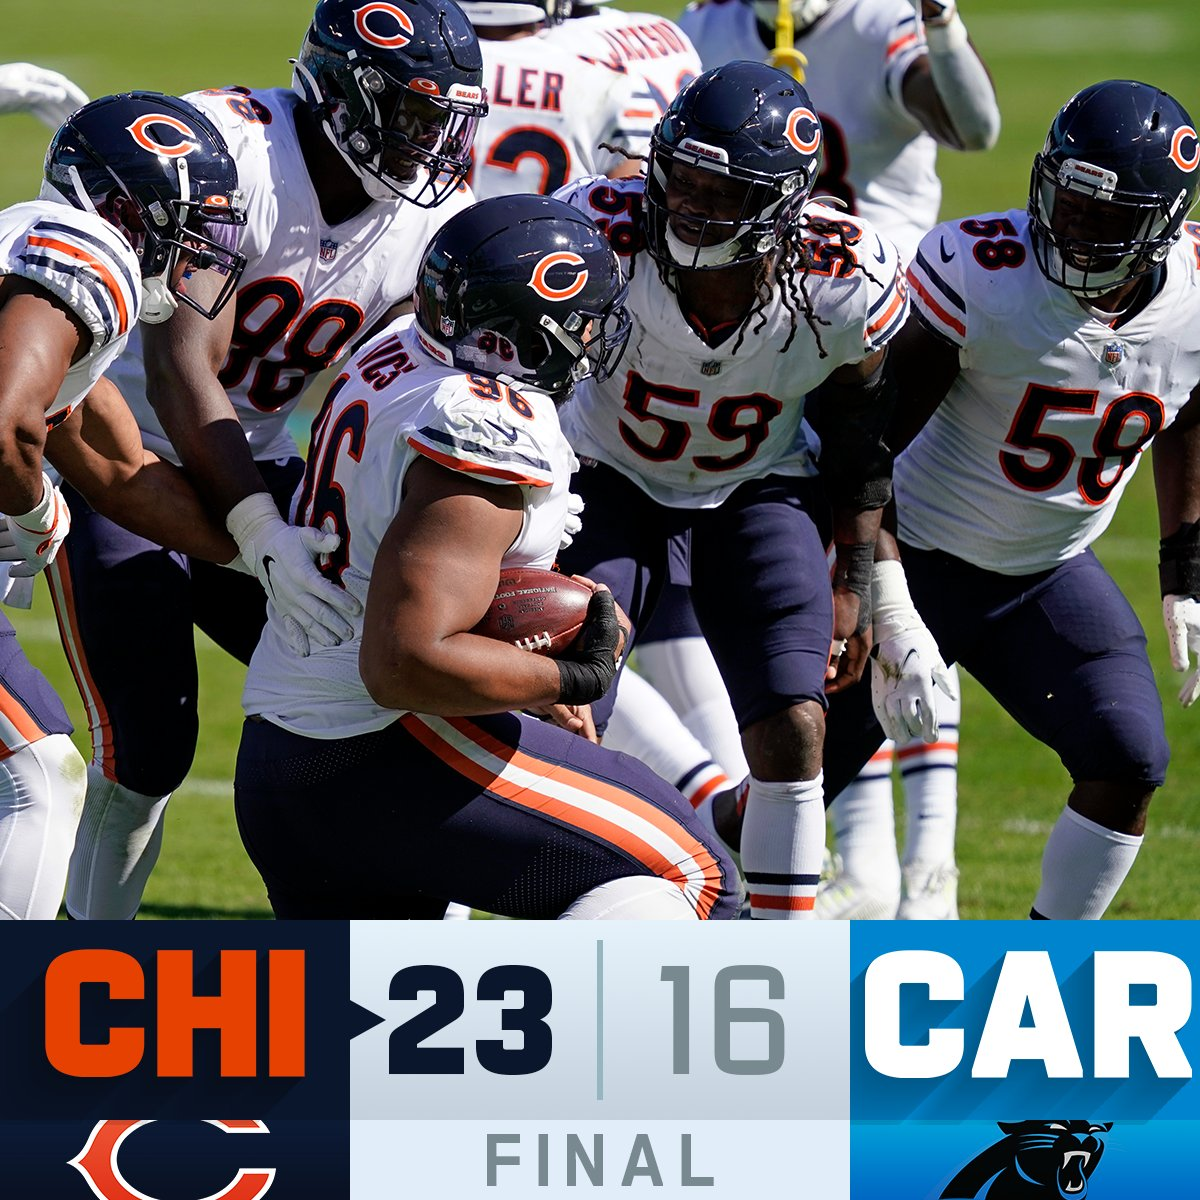 FINAL: The @ChicagoBears are 5-1! #CHIvsCAR #DaBears